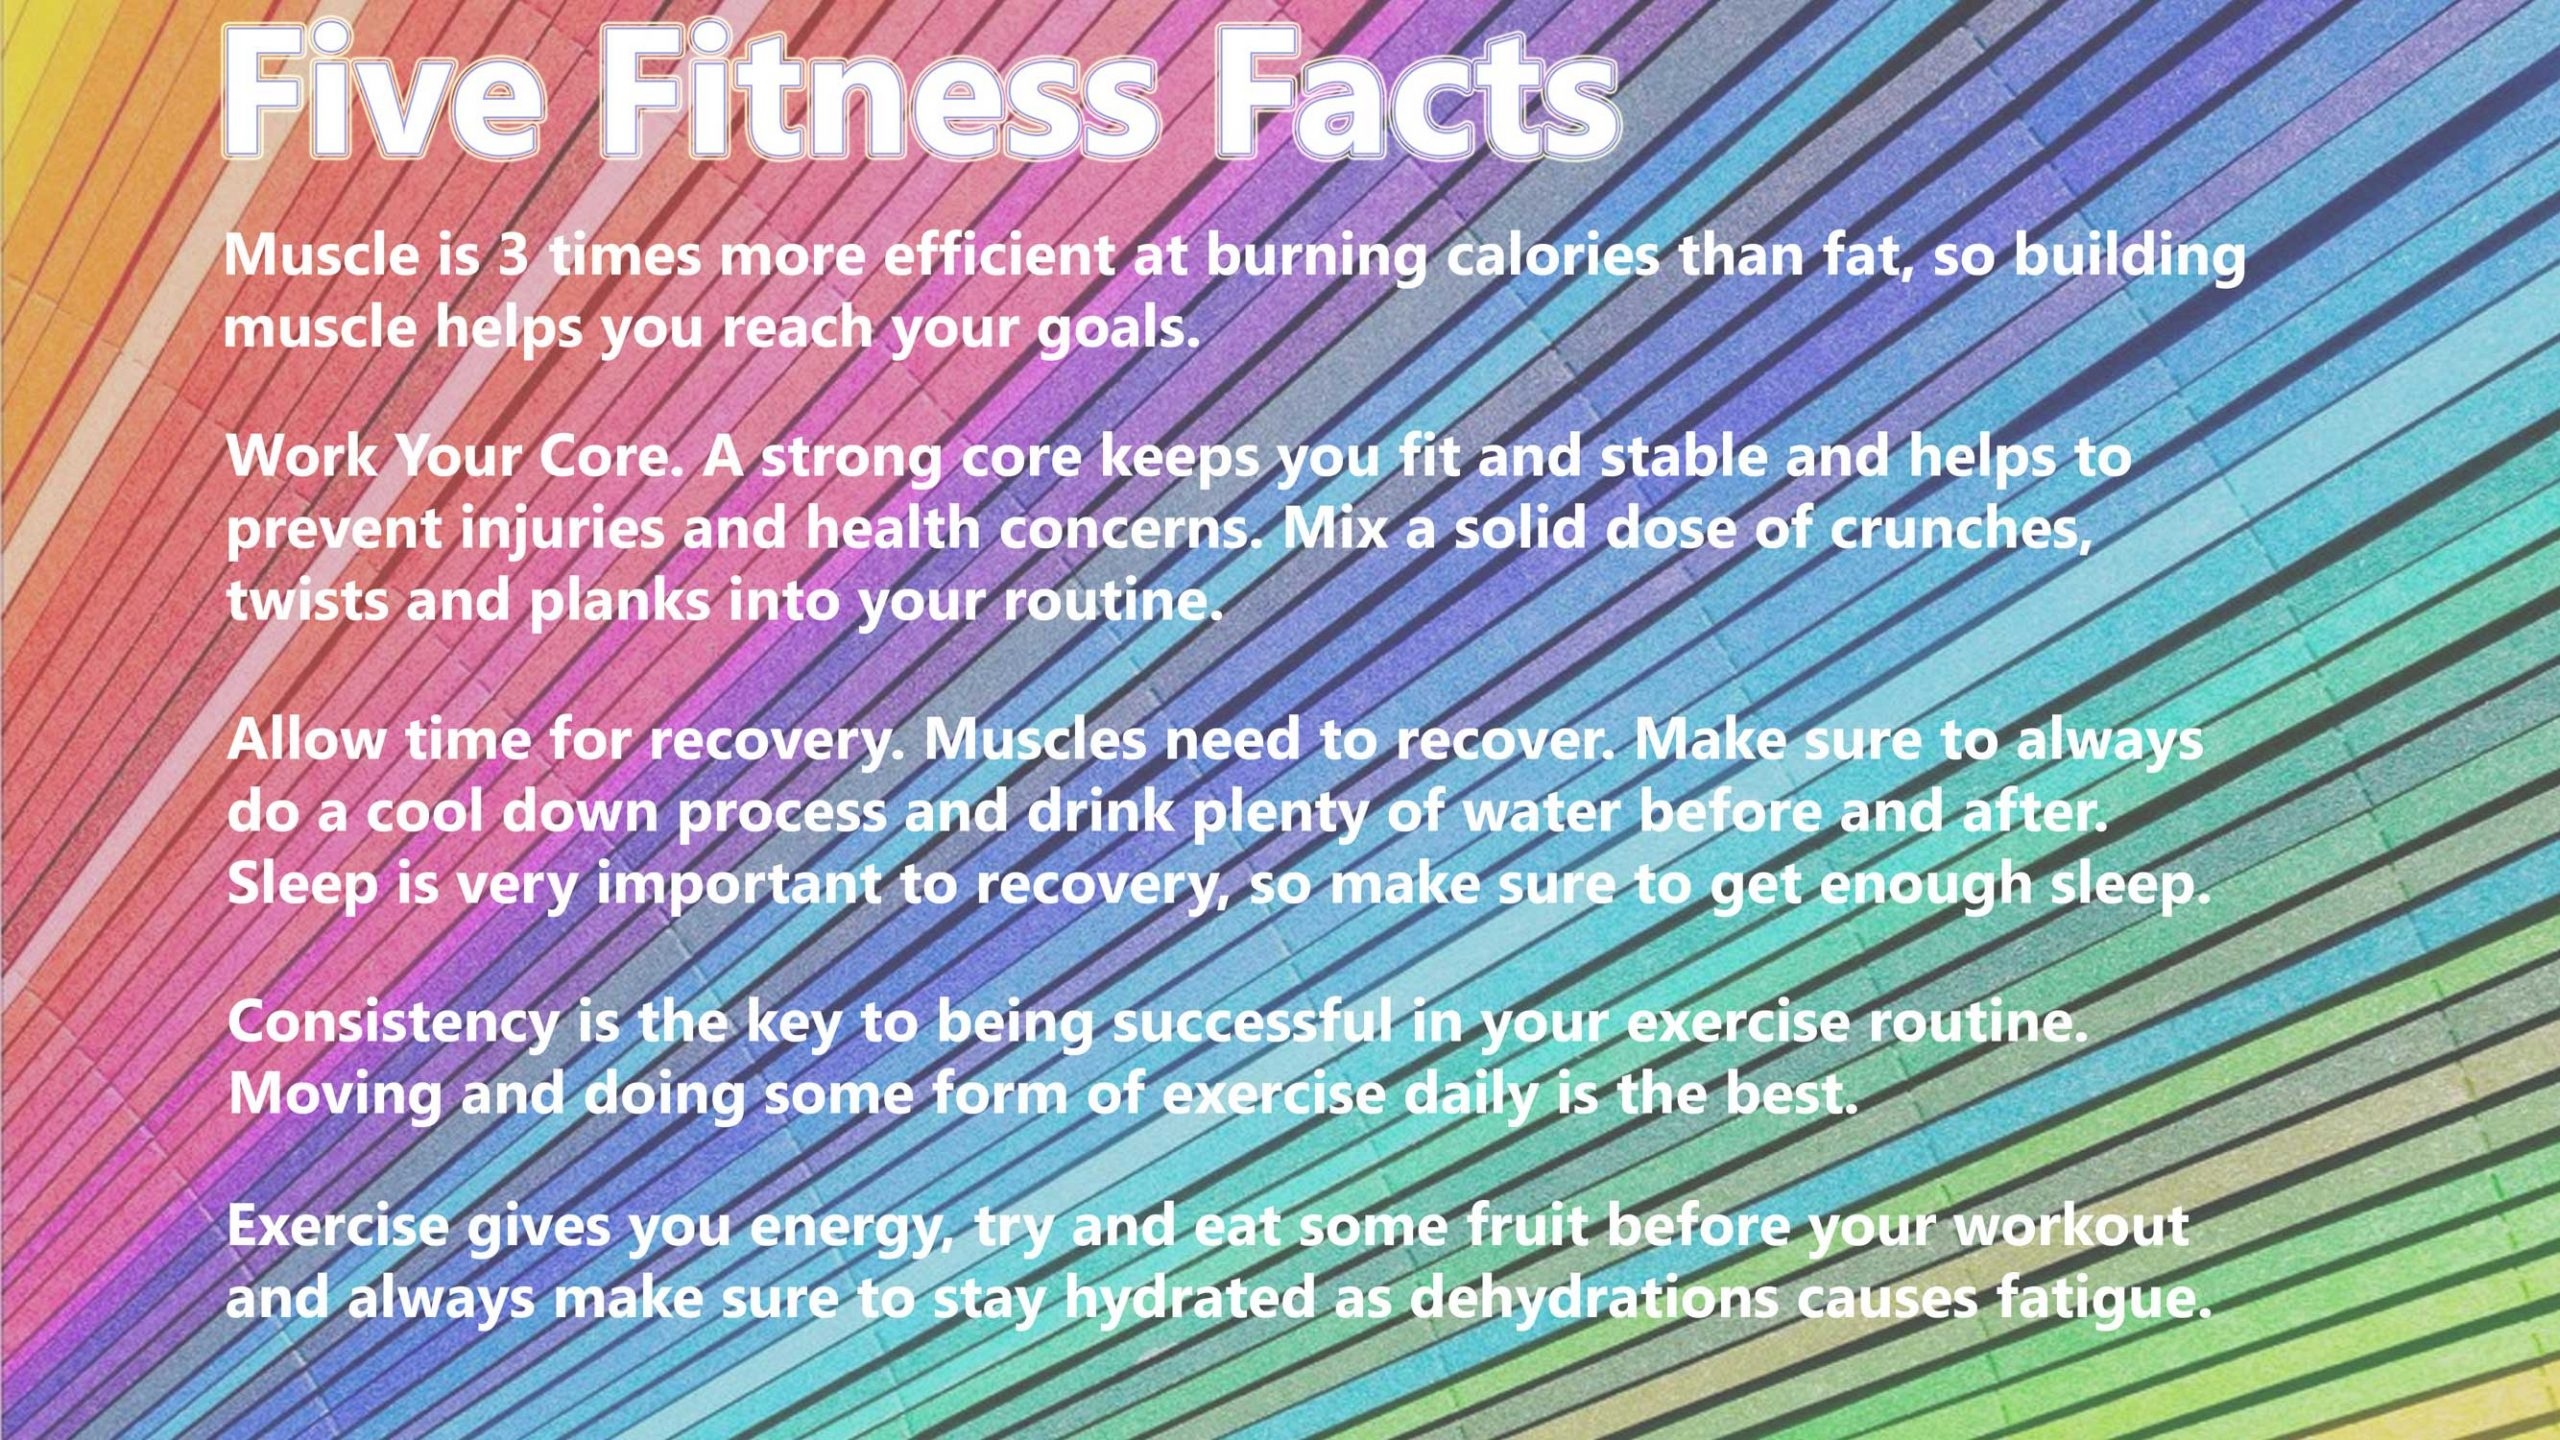 FiveFitnessFacts